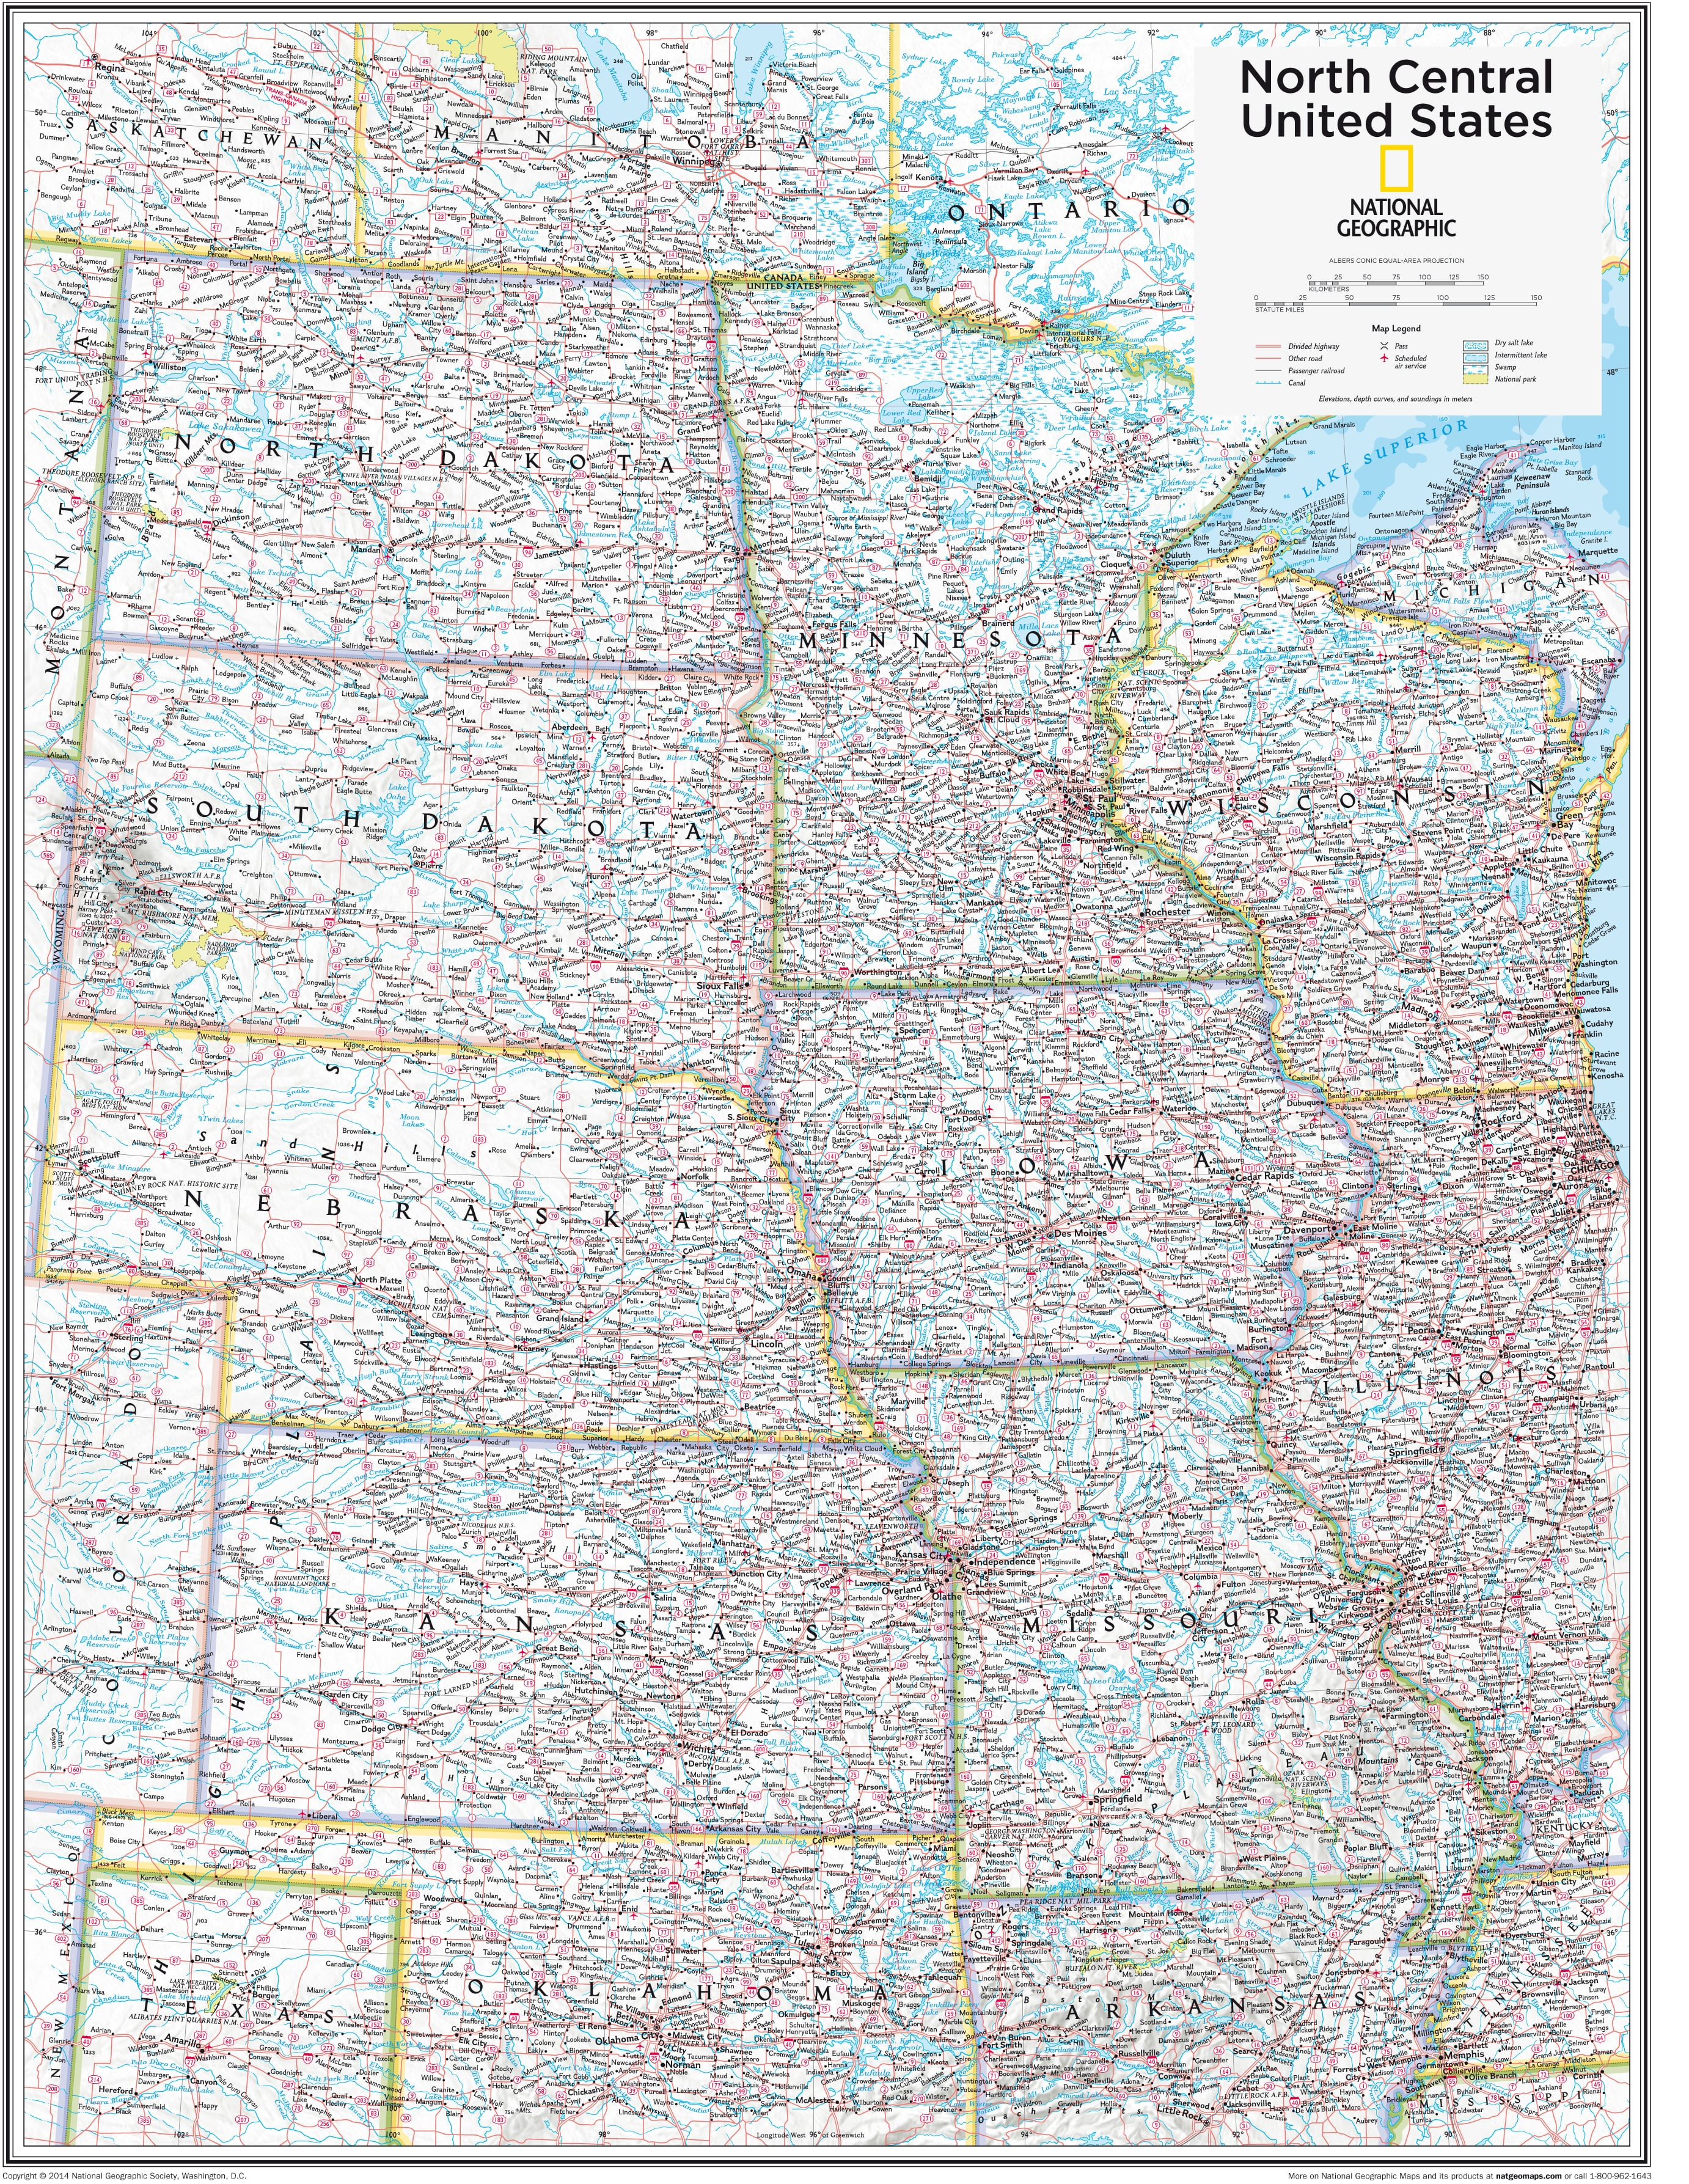 North Central Us Map.Ngs North Central United States Wall Map